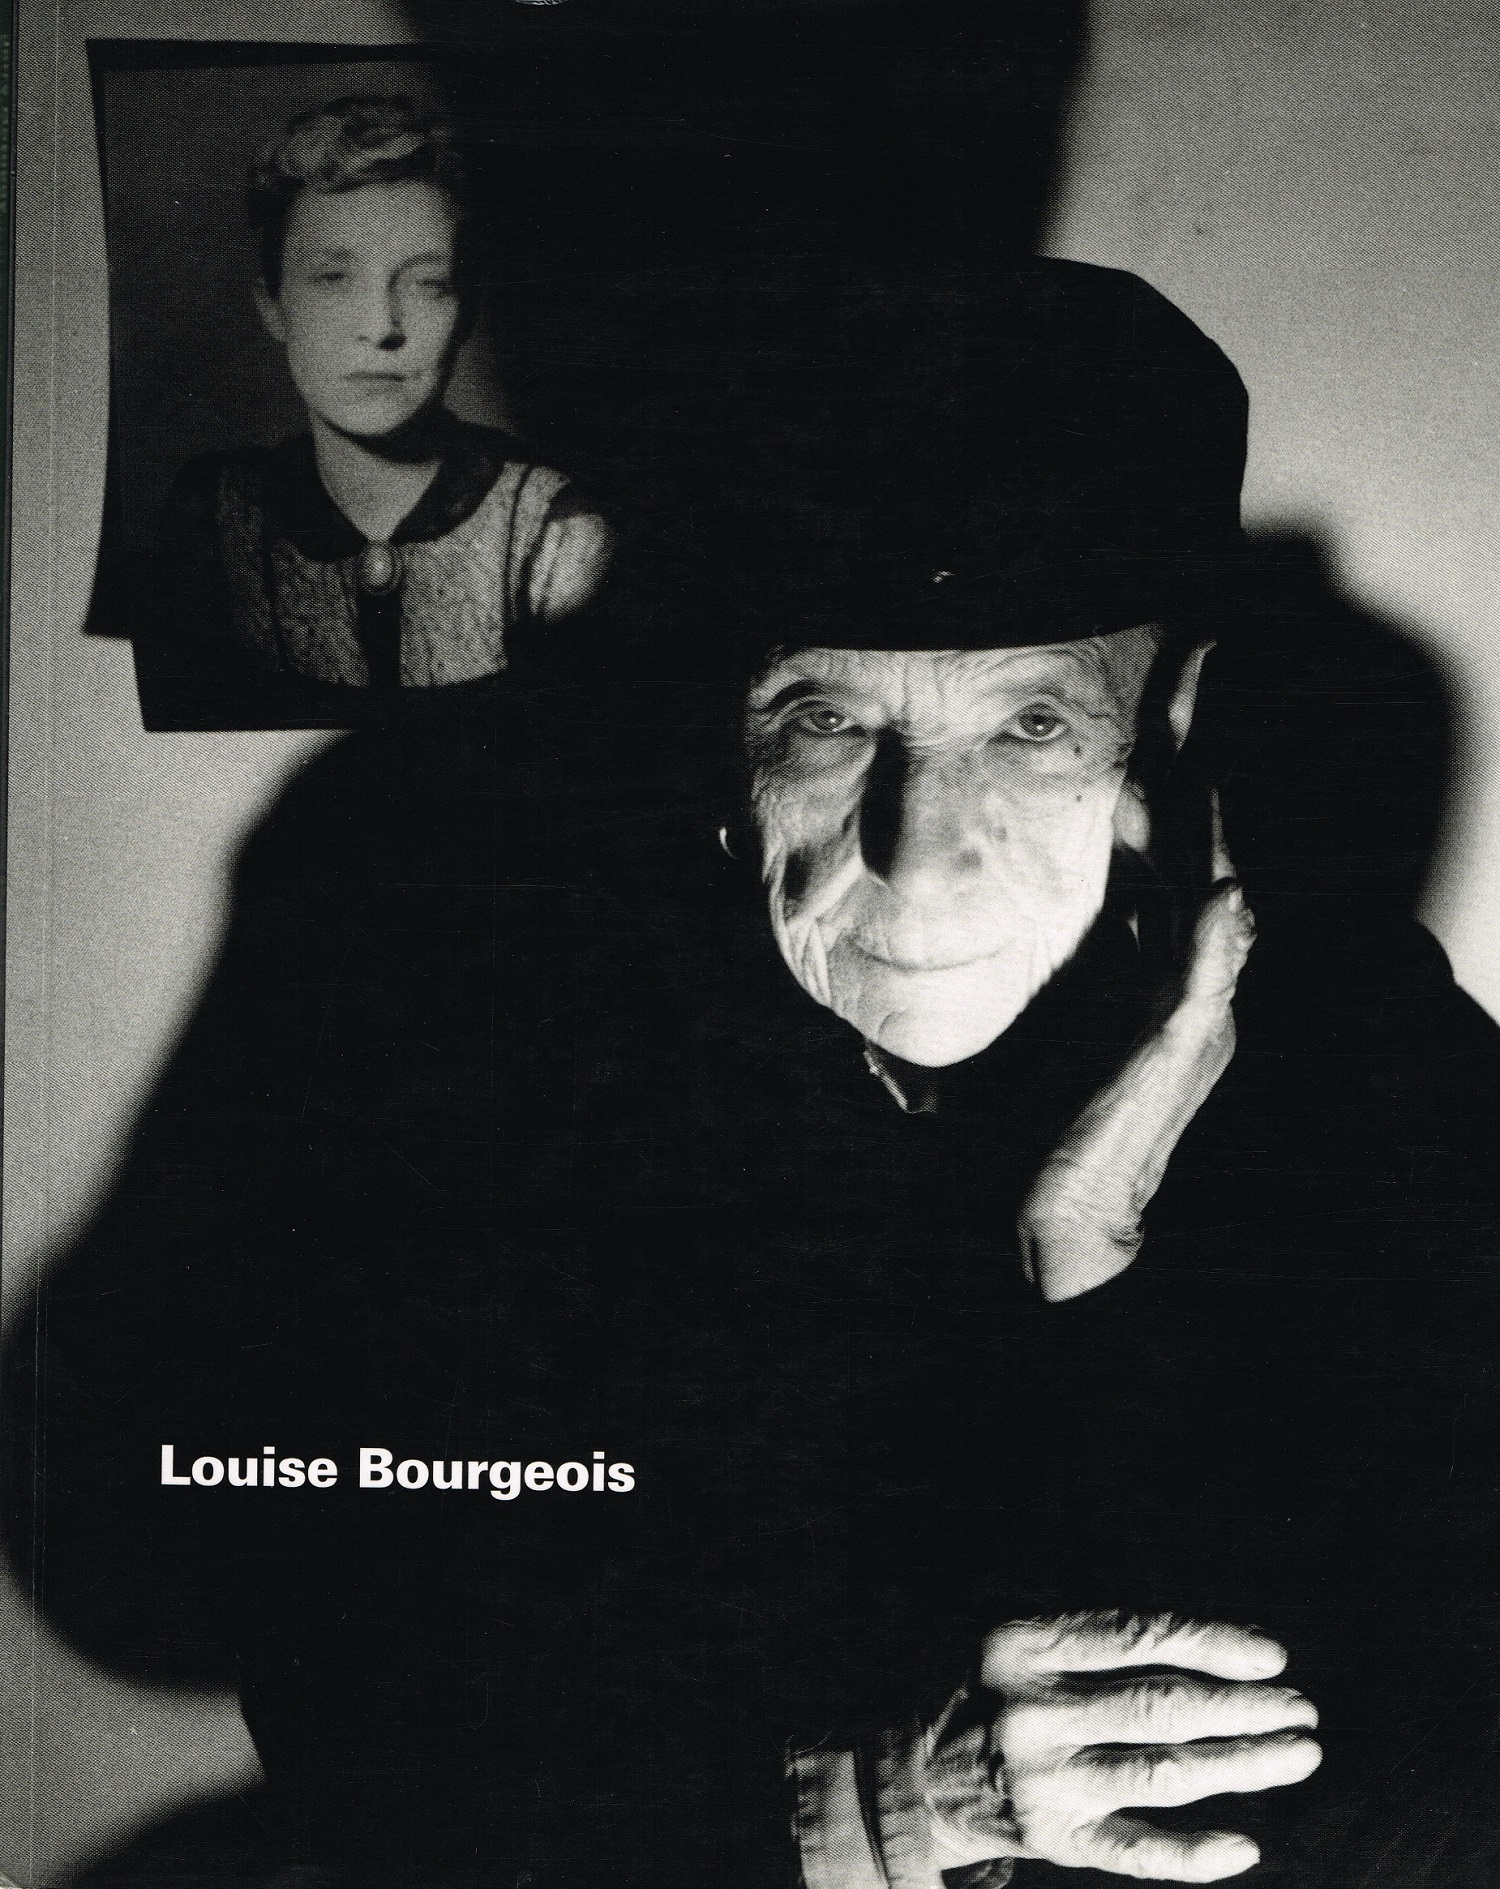 (BOURGEOIS, LOUISE). BOURGEOIS, LOUISE, JERRY GOROVOY, PANDORA TABATABAI ASBAGHI & PAULO HERKENHOFF - LOUISE BOURGEOIS: BLUE DAYS AND PINK DAYS